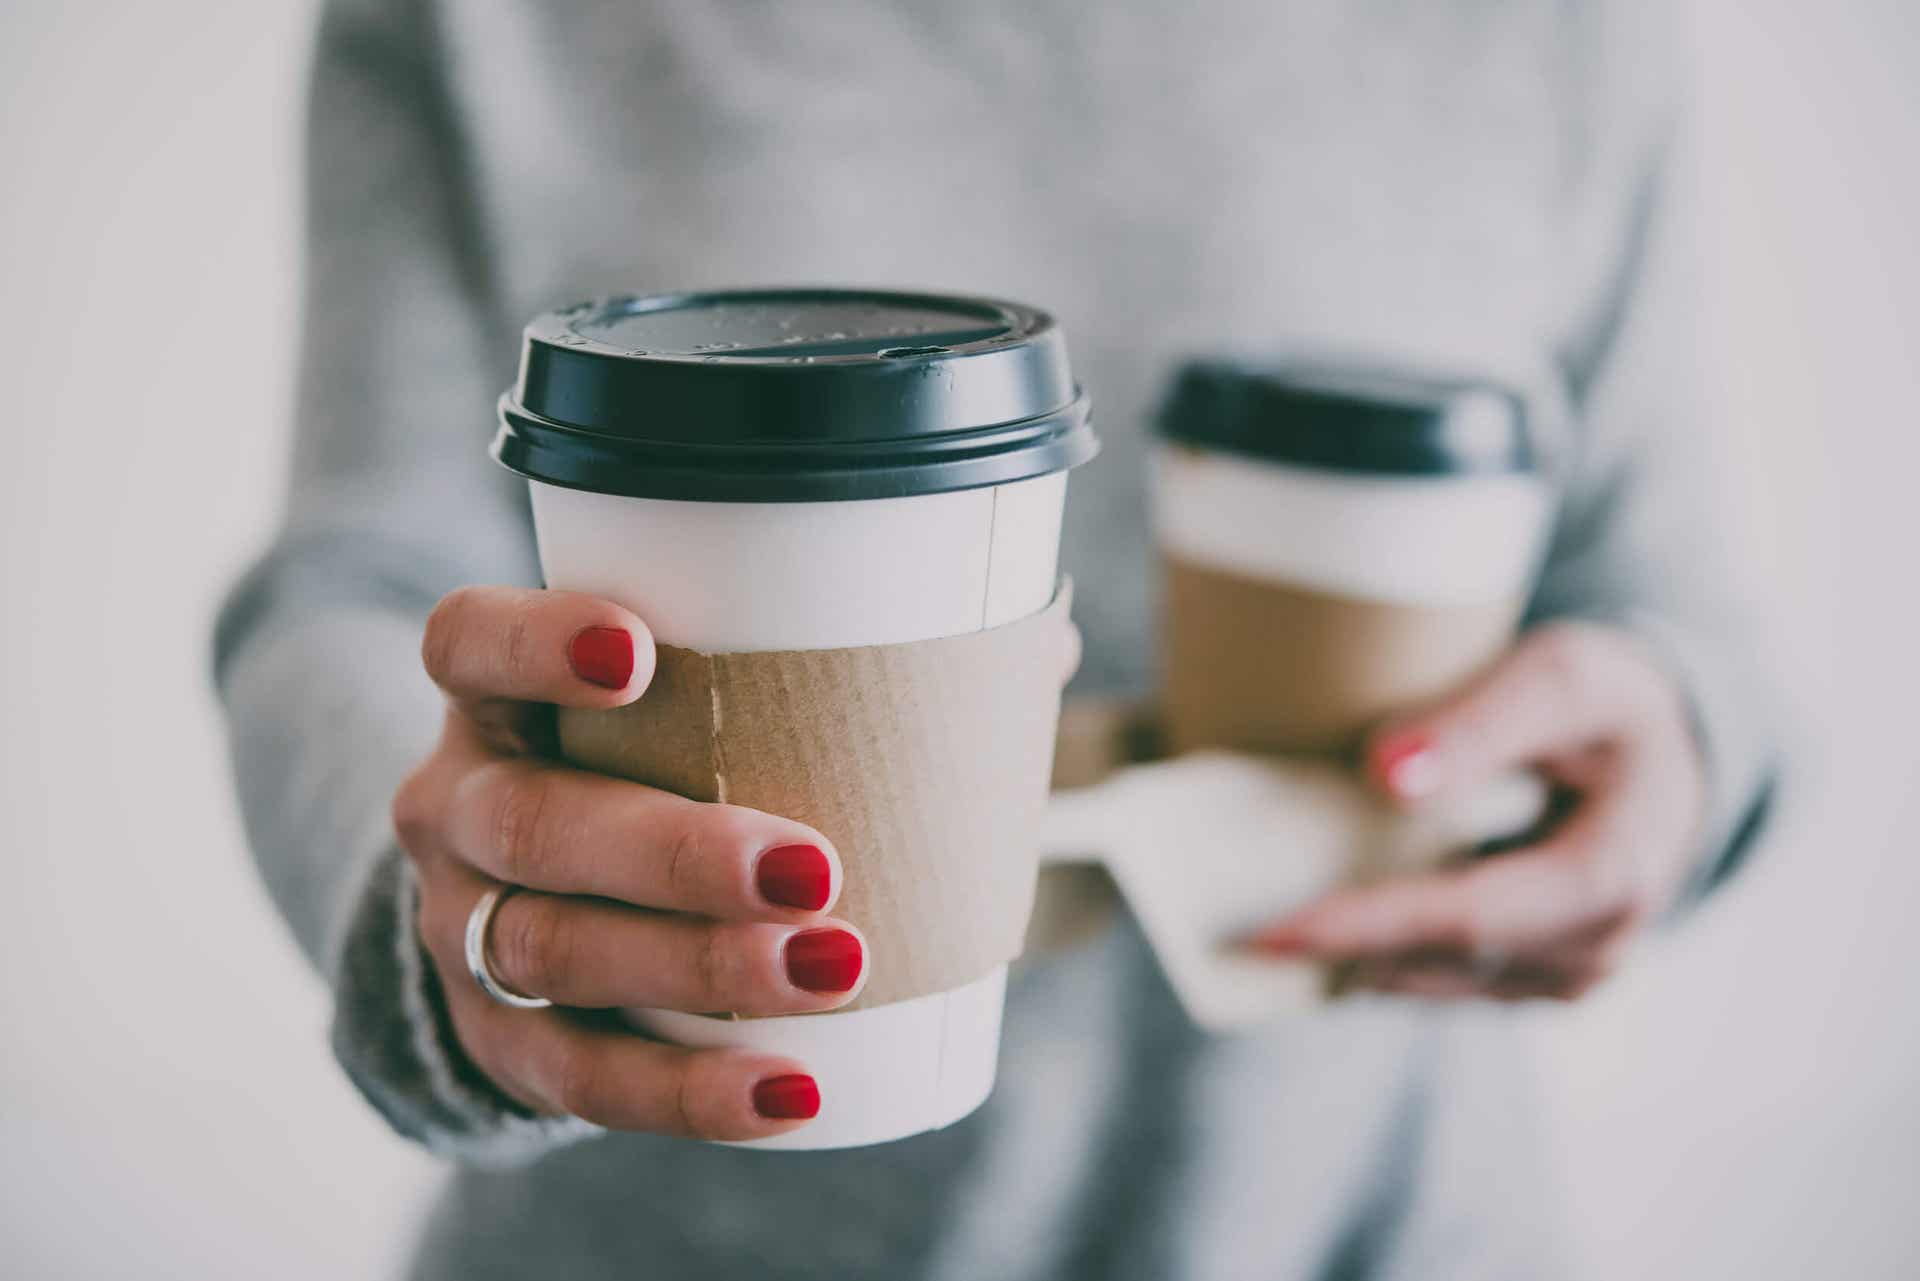 A woman holding coffee